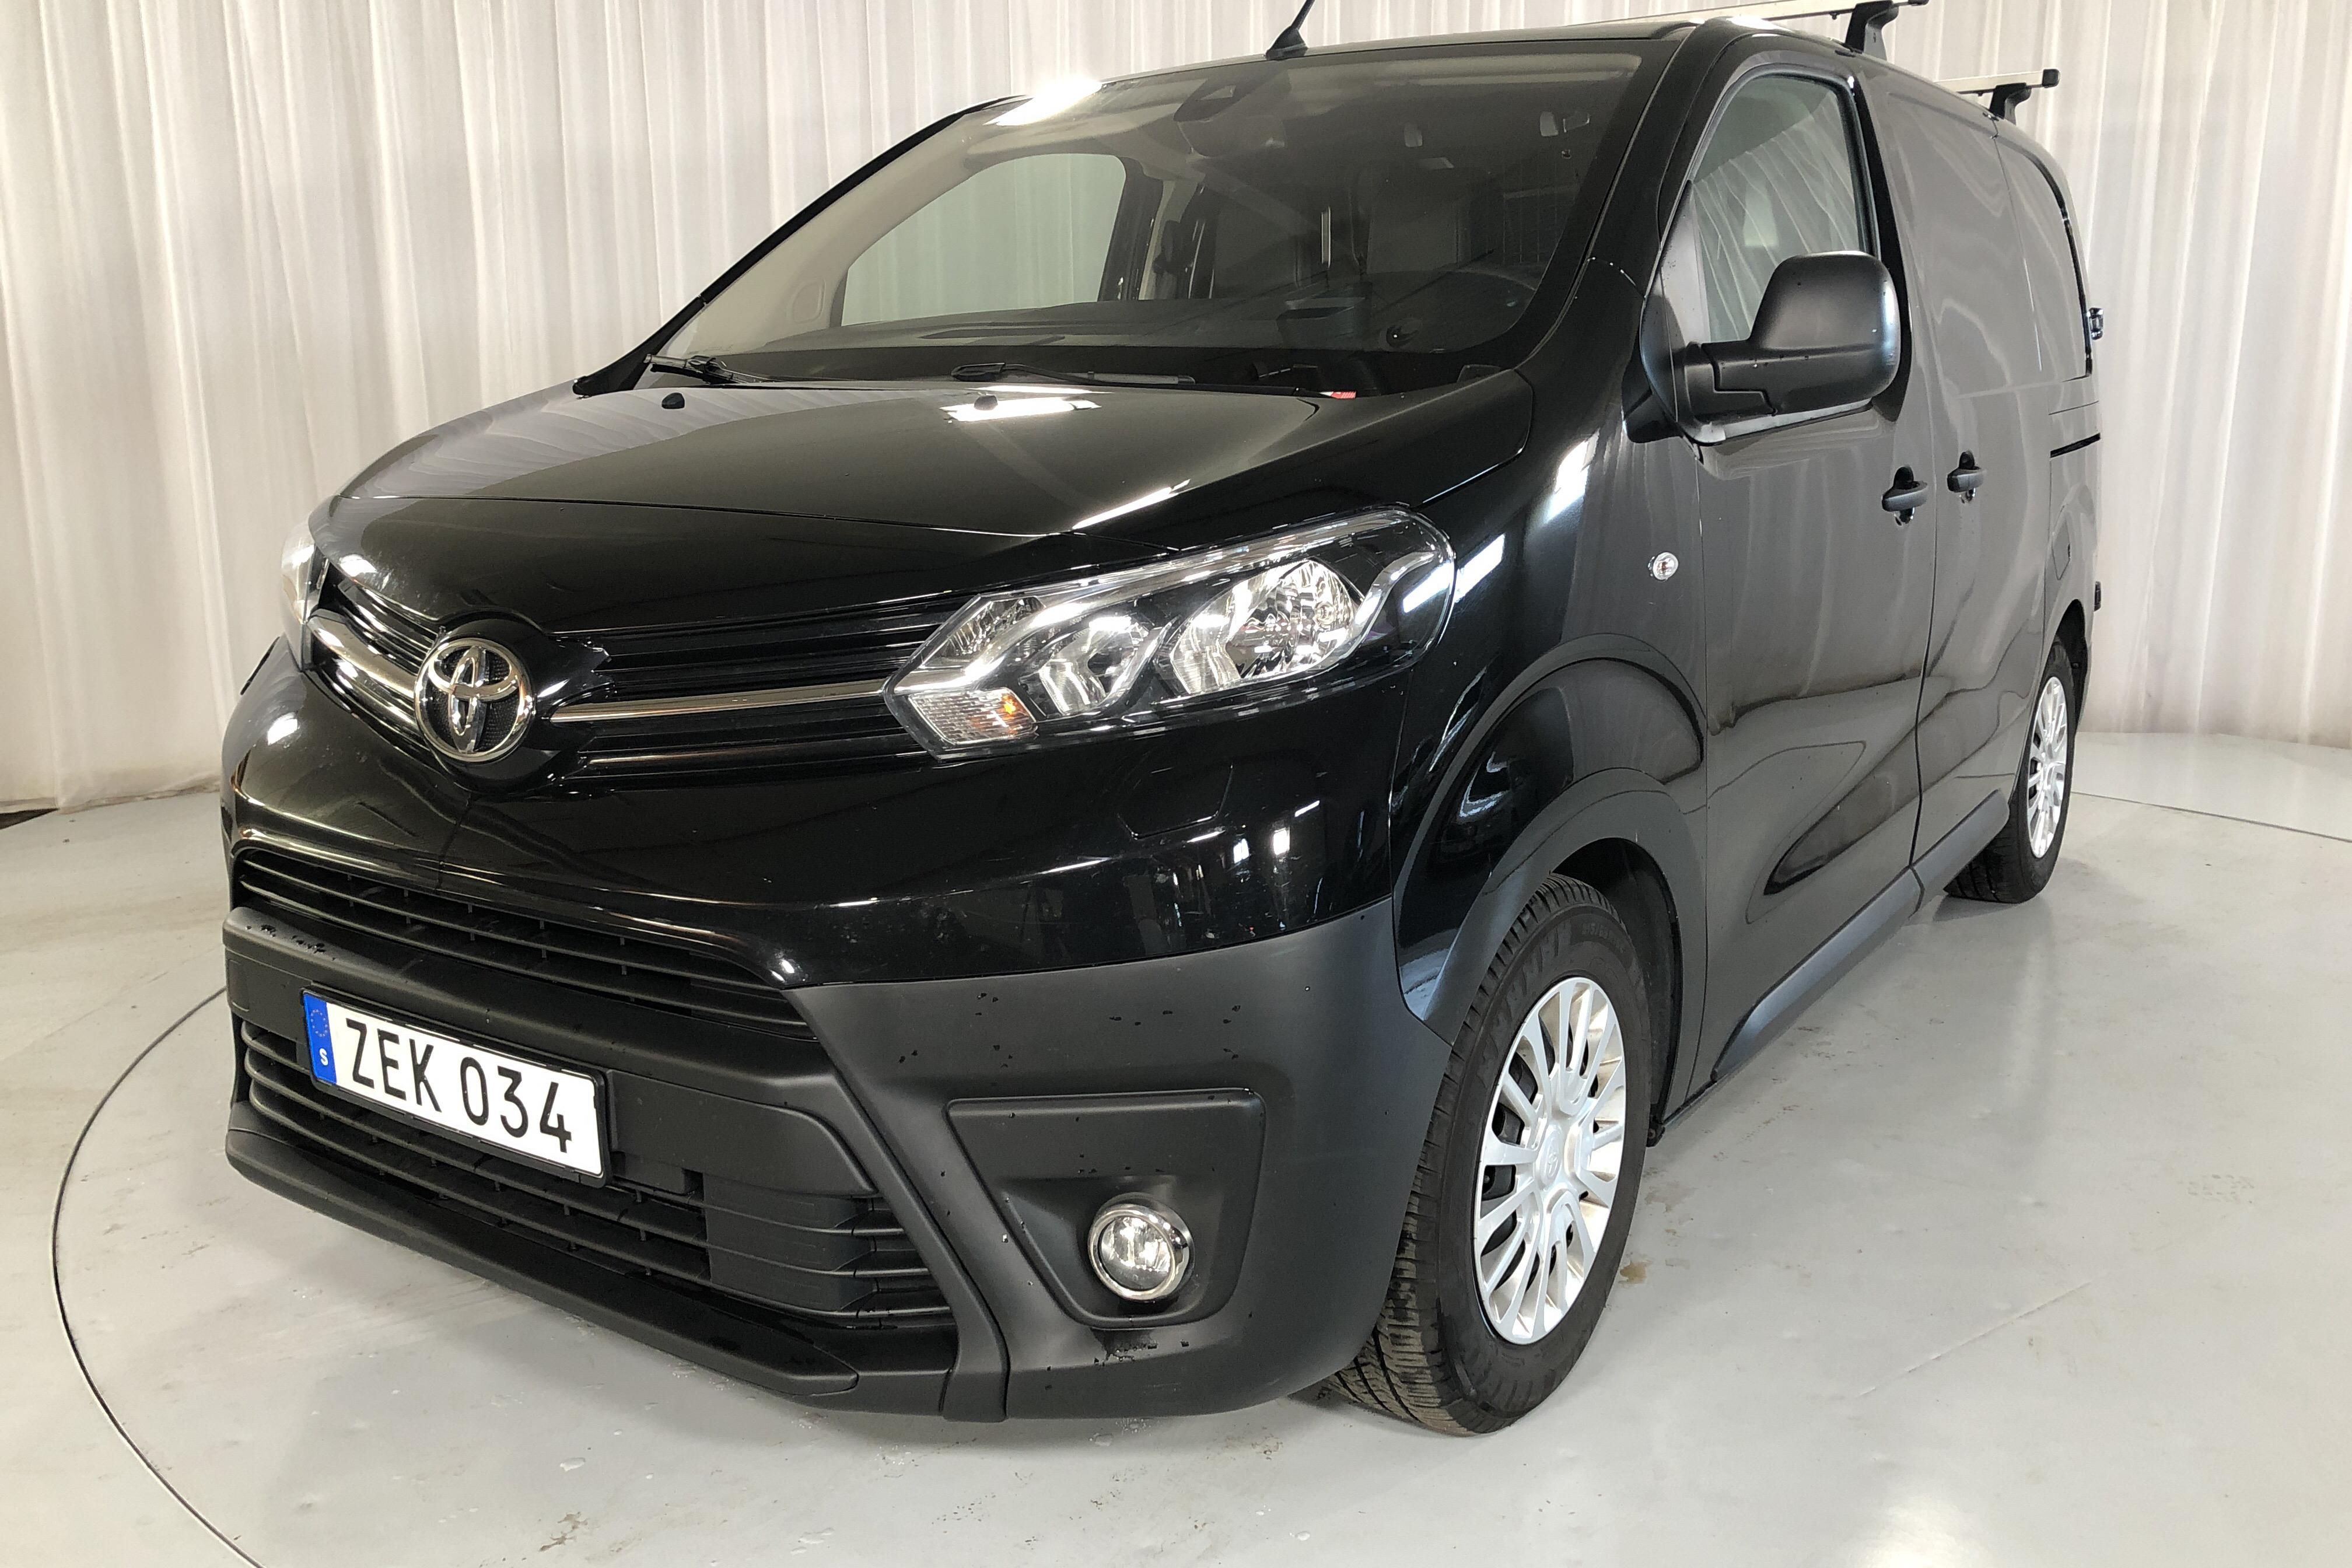 Toyota PROACE 1.6 (115 PS)